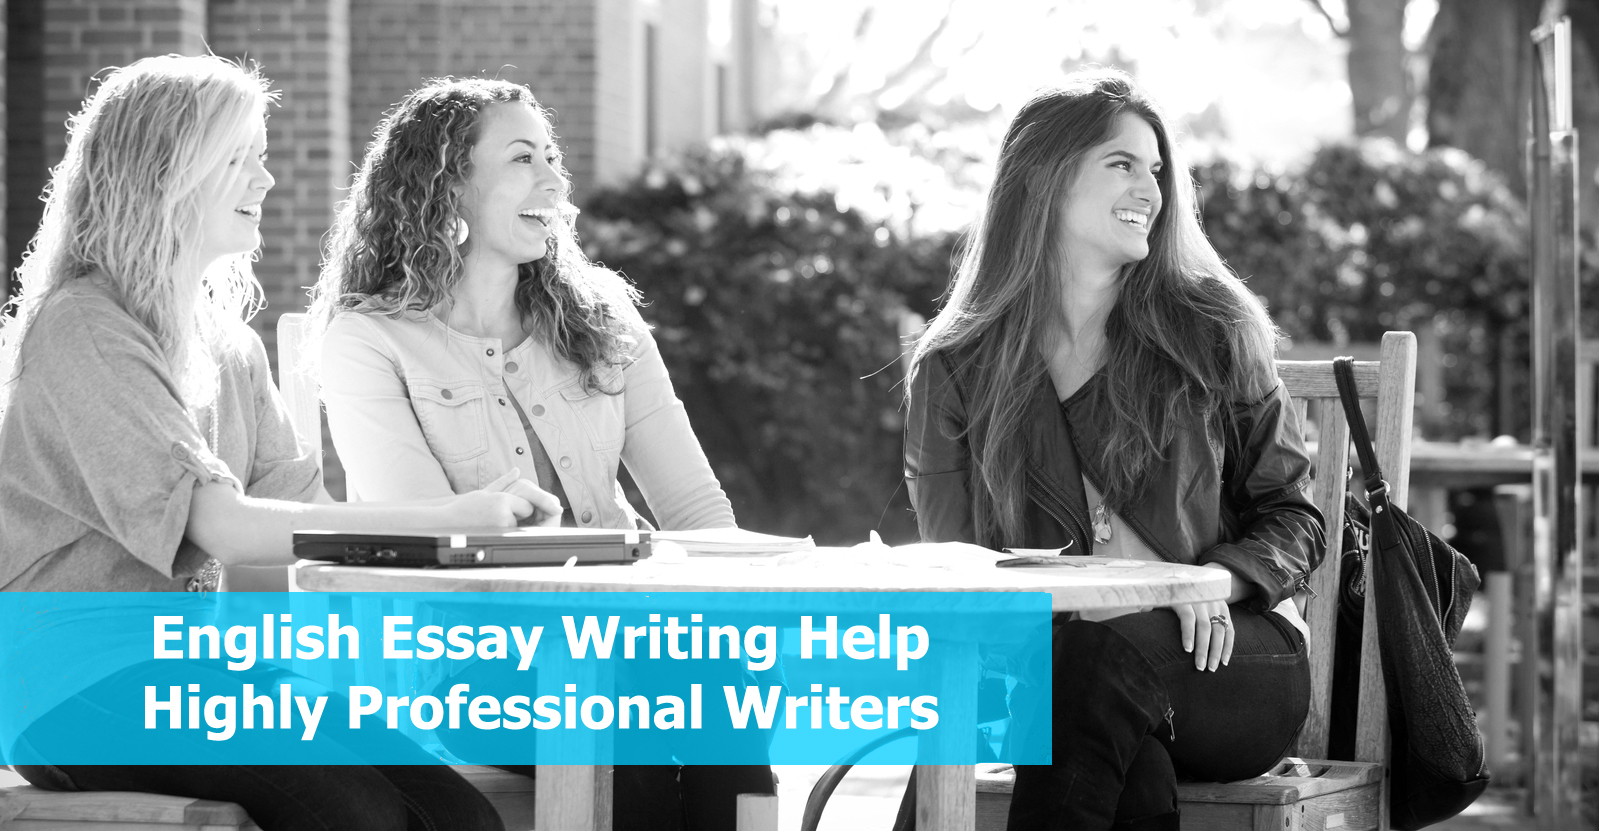 Learn English Essay English Essay Writing Help Buy Essay Papers Online also Compare And Contrast Essay Topics For High School English Essay Writing Help  Essaycafe Thesis For A Persuasive Essay